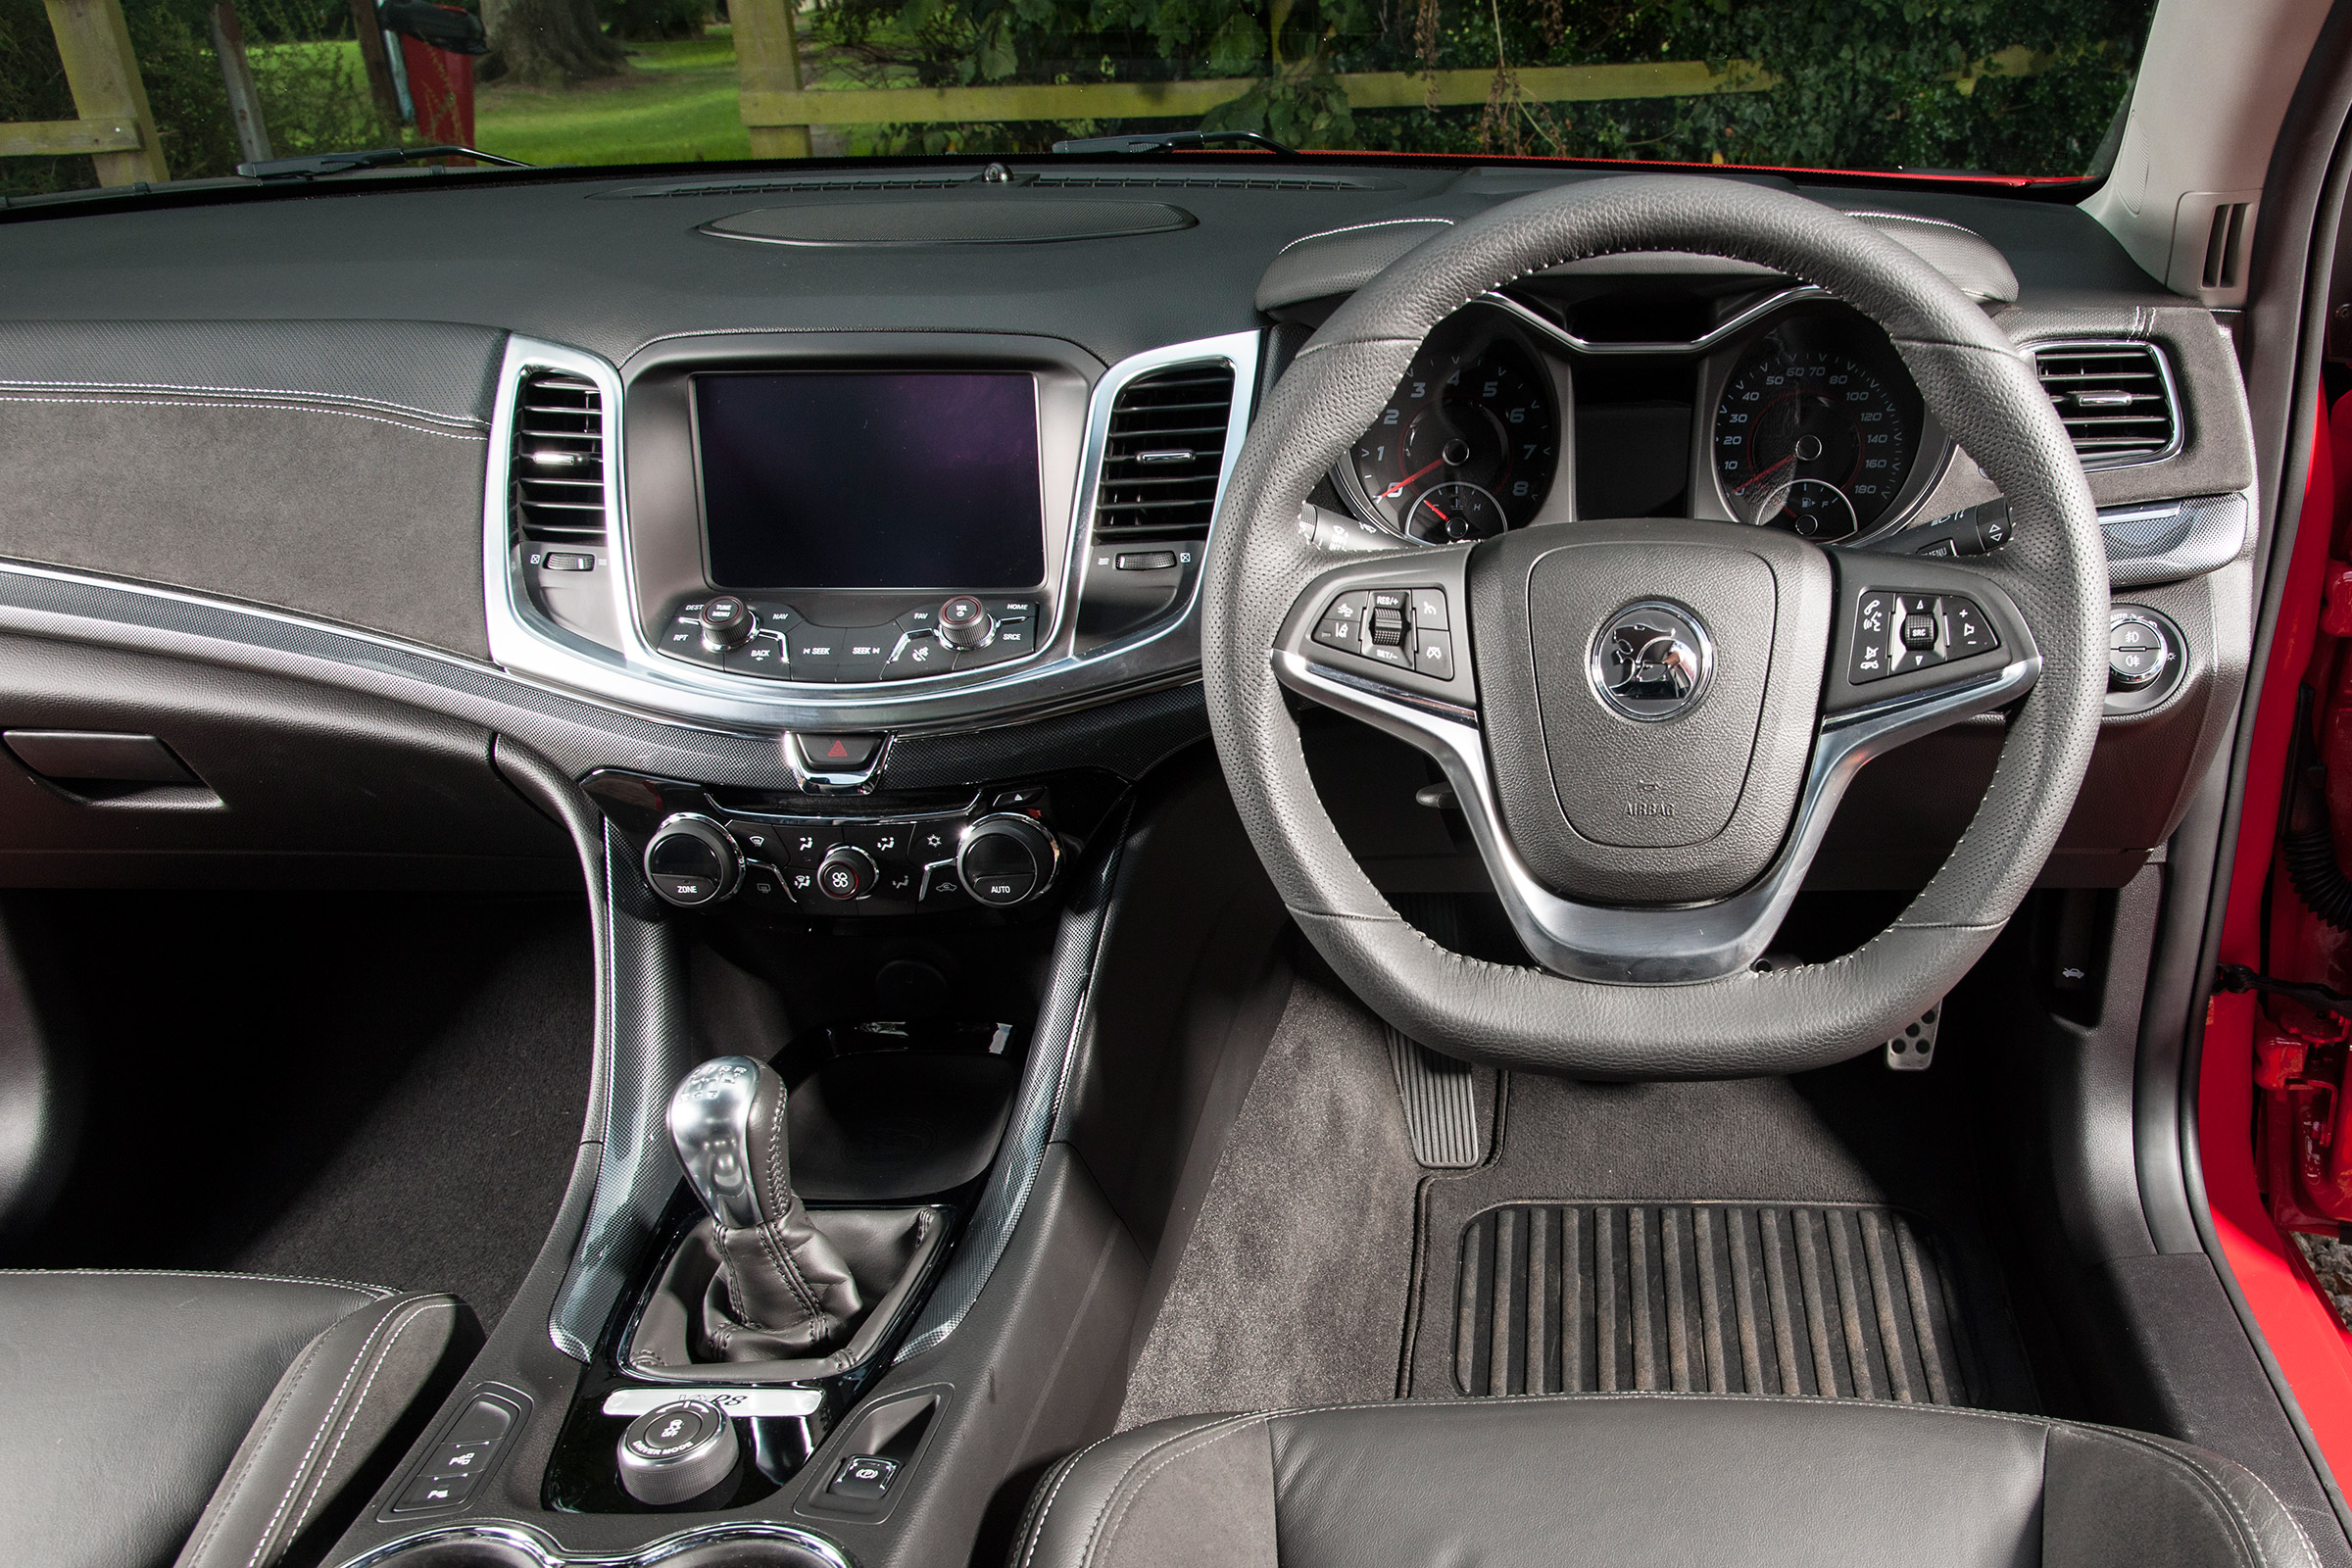 2017 Vauxhall VXR8 Maloo Interior Driver Cockpit Steering And Dash (Photo 20 of 26)